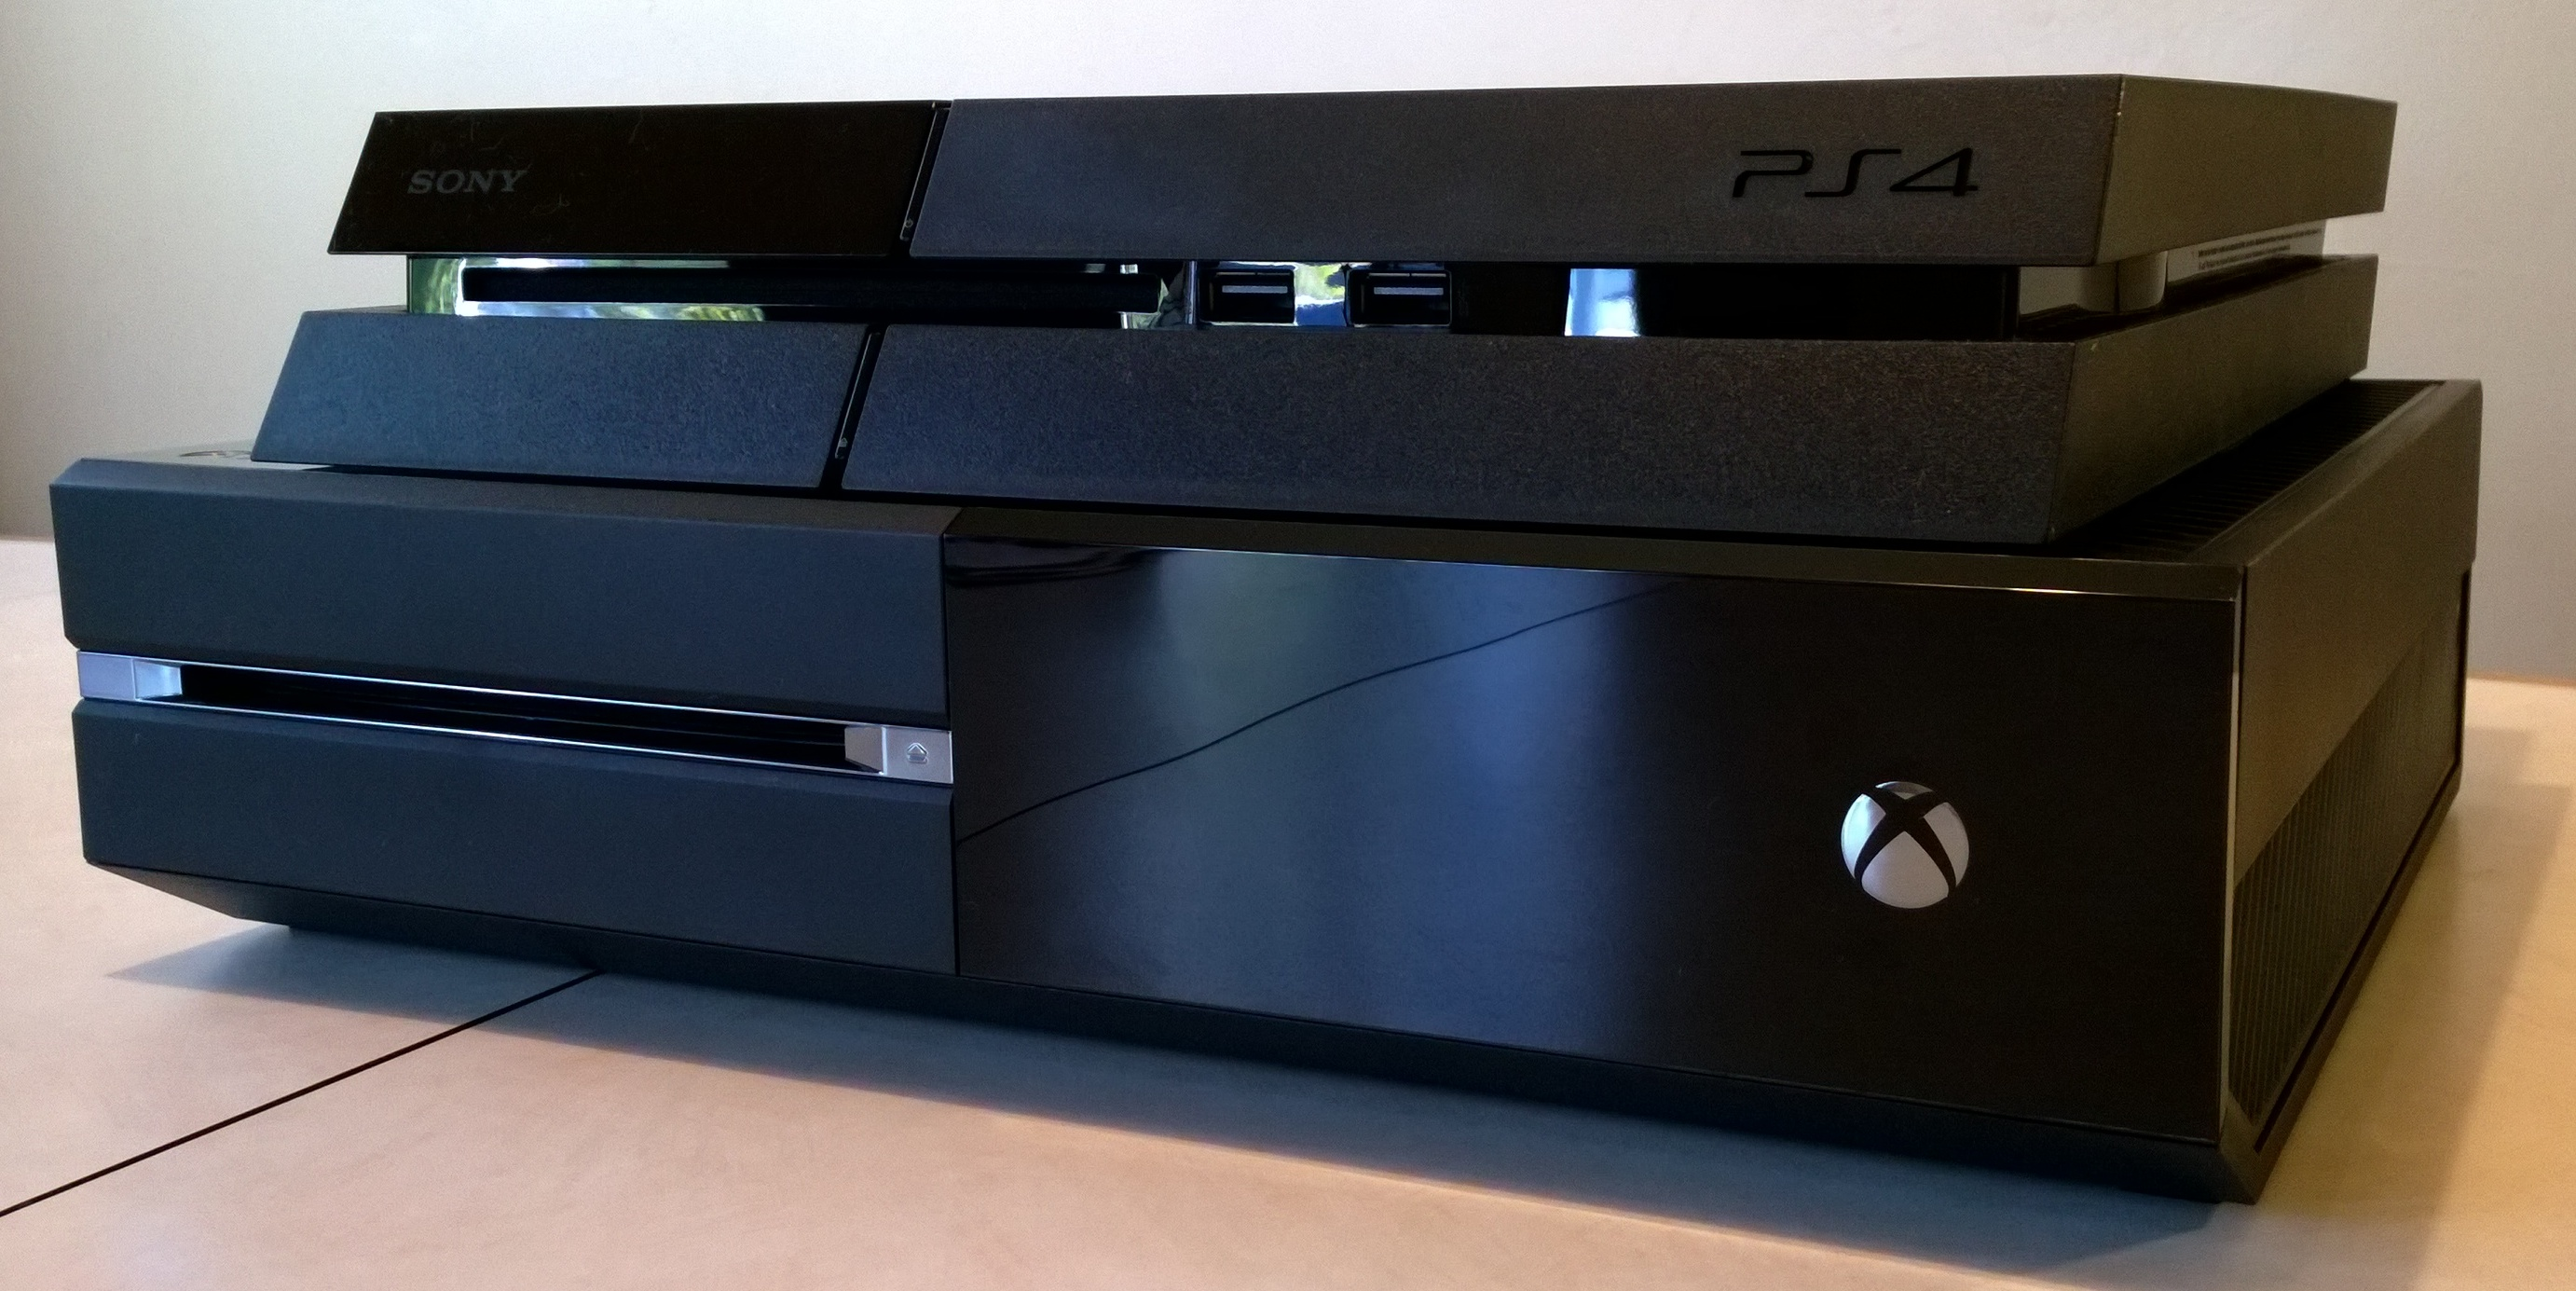 PlayStation 4 beat Xbox One for January console sales, but Xbox One sold more games